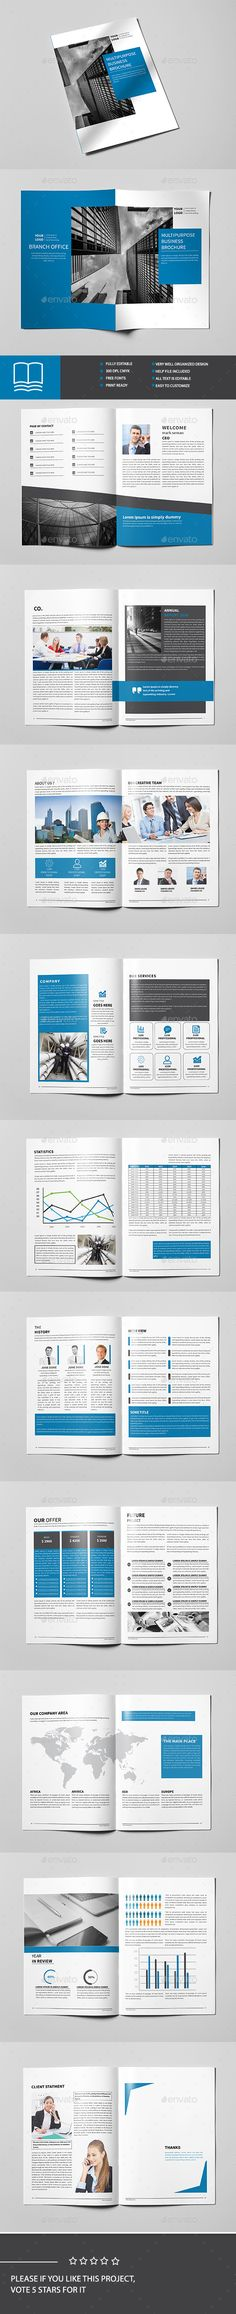 Buy Corporate Brochure Template by Point-Dng on GraphicRiver. Corporate Business Brochure Professional, clean and modern 22 page corporate business brochure. Corporate Brochure Design, Brochure Layout, Graphisches Design, Layout Design, Magazine Examples, Company Profile Design, Indesign Brochure Templates, Booklet Design, Picture Albums